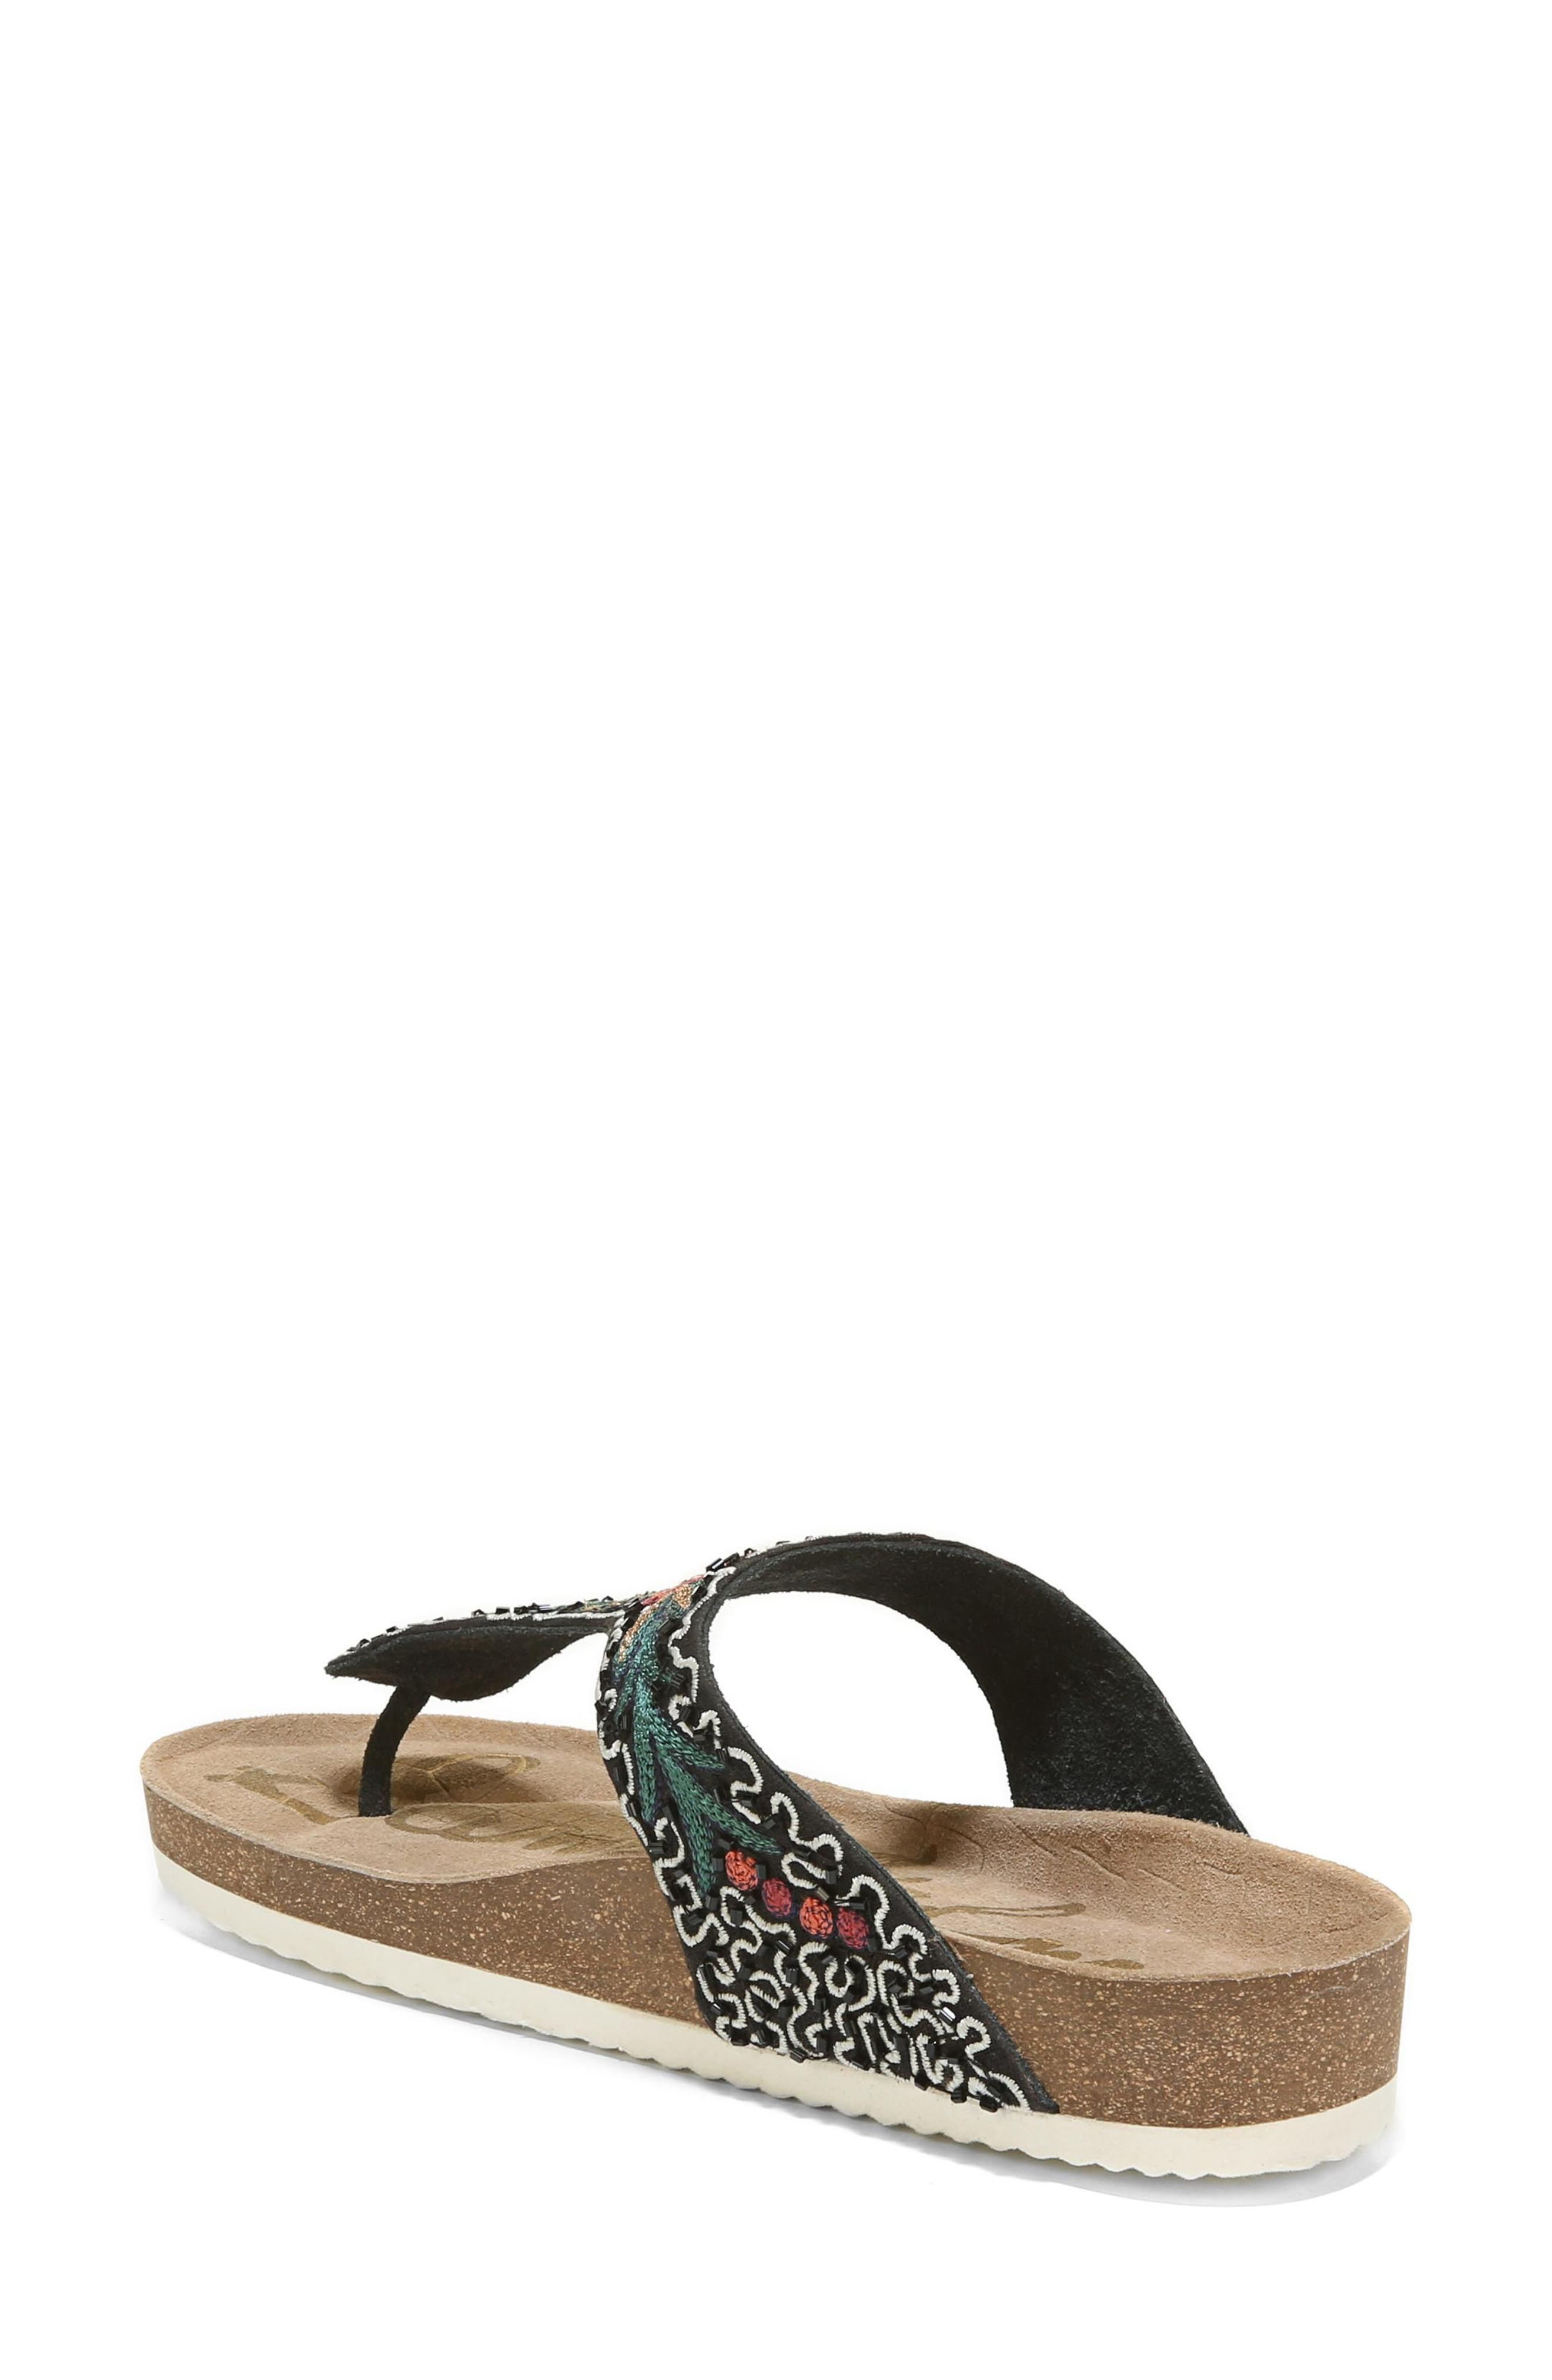 Olivie Beaded Flip Flop,                             Alternate thumbnail 2, color,                             001